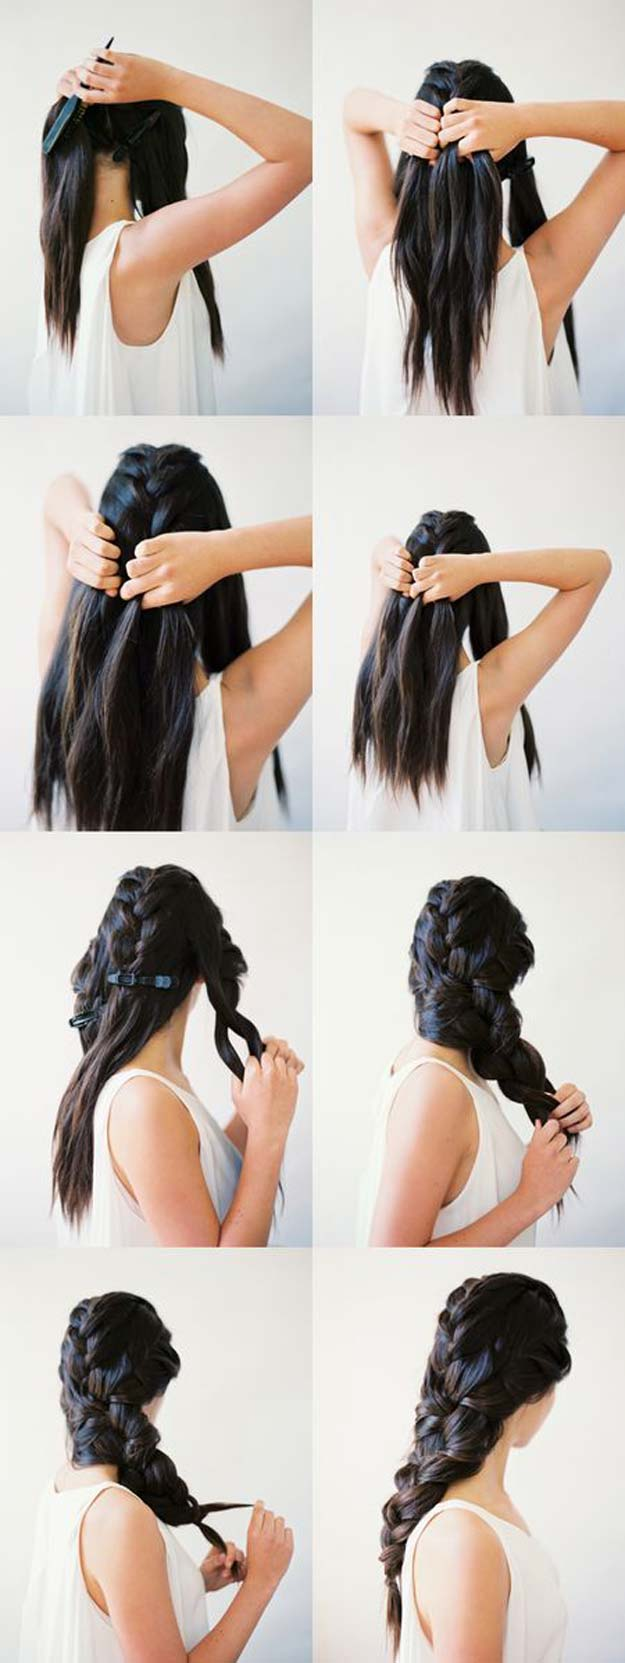 41 diy cool easy hairstyles that real people can actually do at home cool and easy diy hairstyles stylish braids quick and easy ideas for back to solutioingenieria Image collections